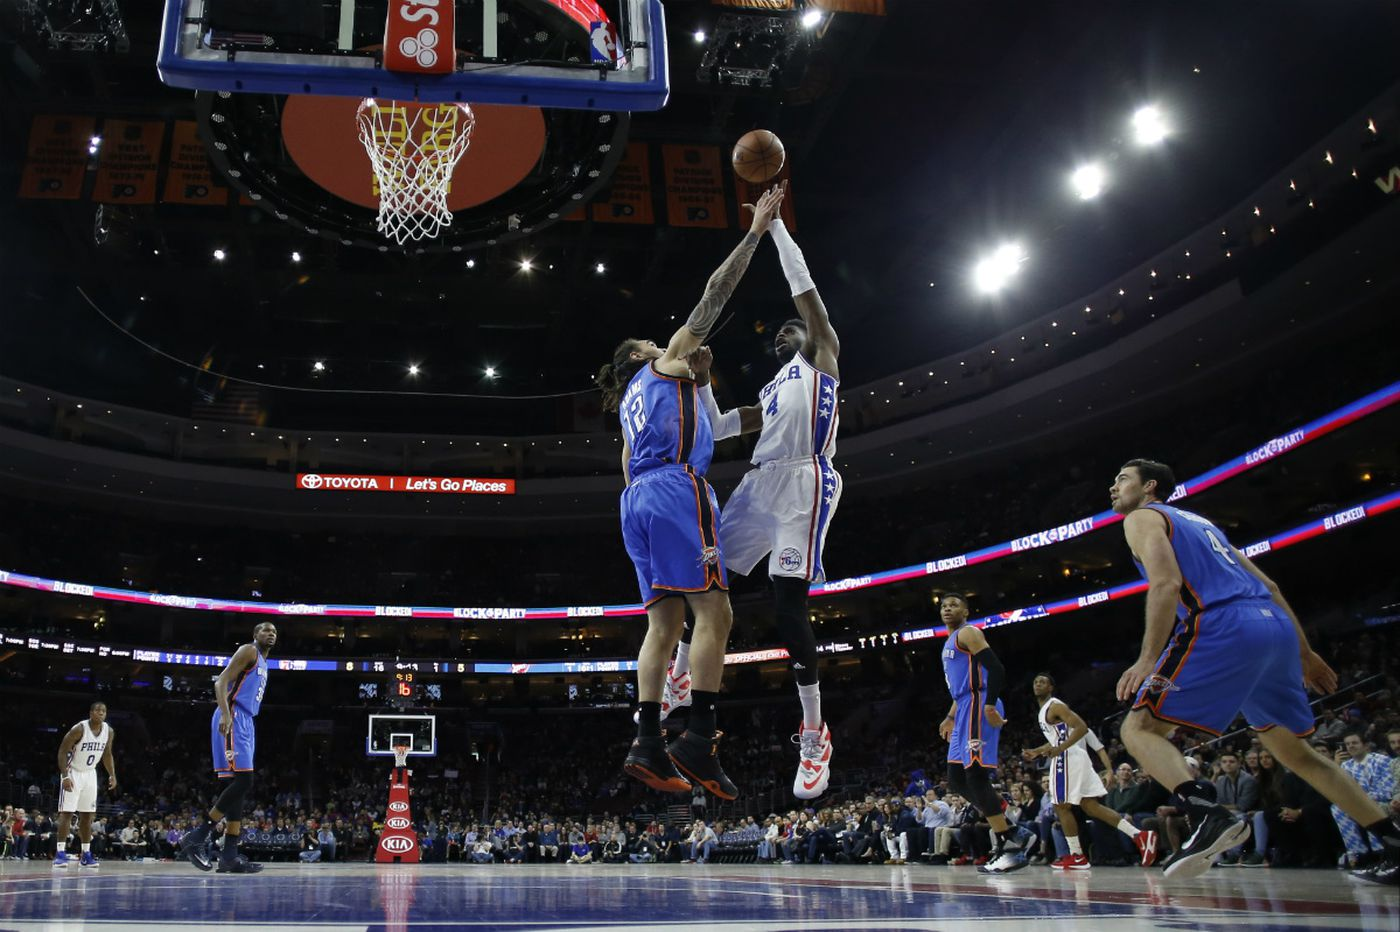 Thunder's Donovan has his own challenges